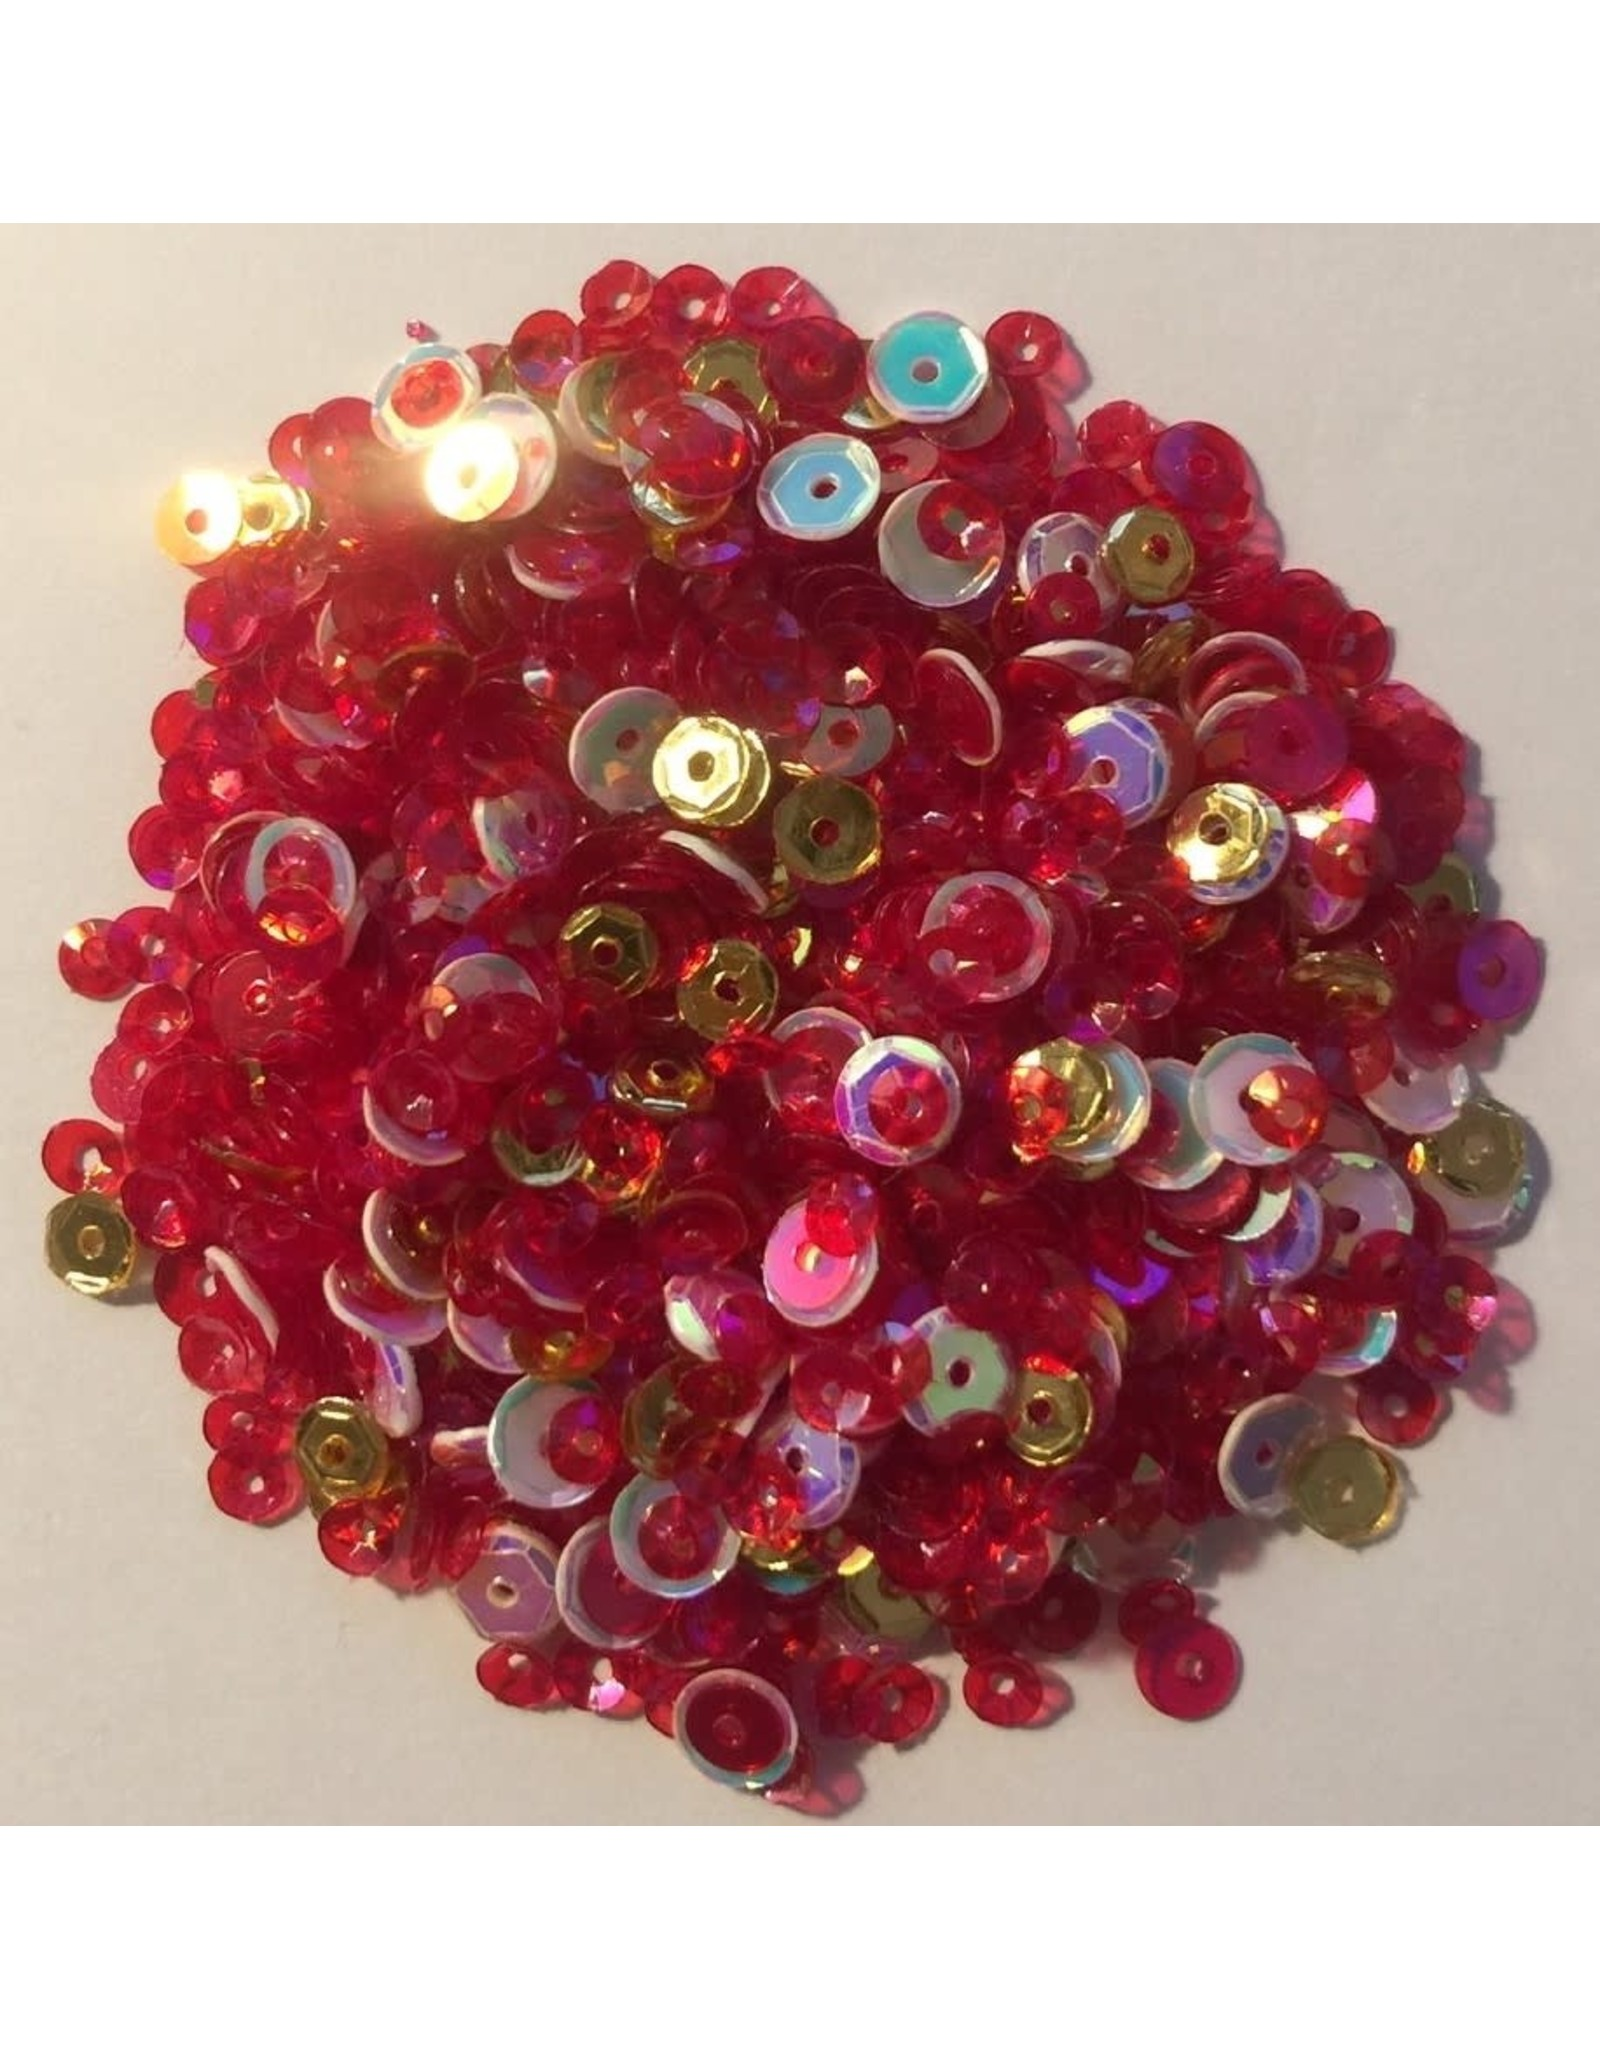 Paws-Itively Pawsome Designs Shaker Mix - Cranberry Garland